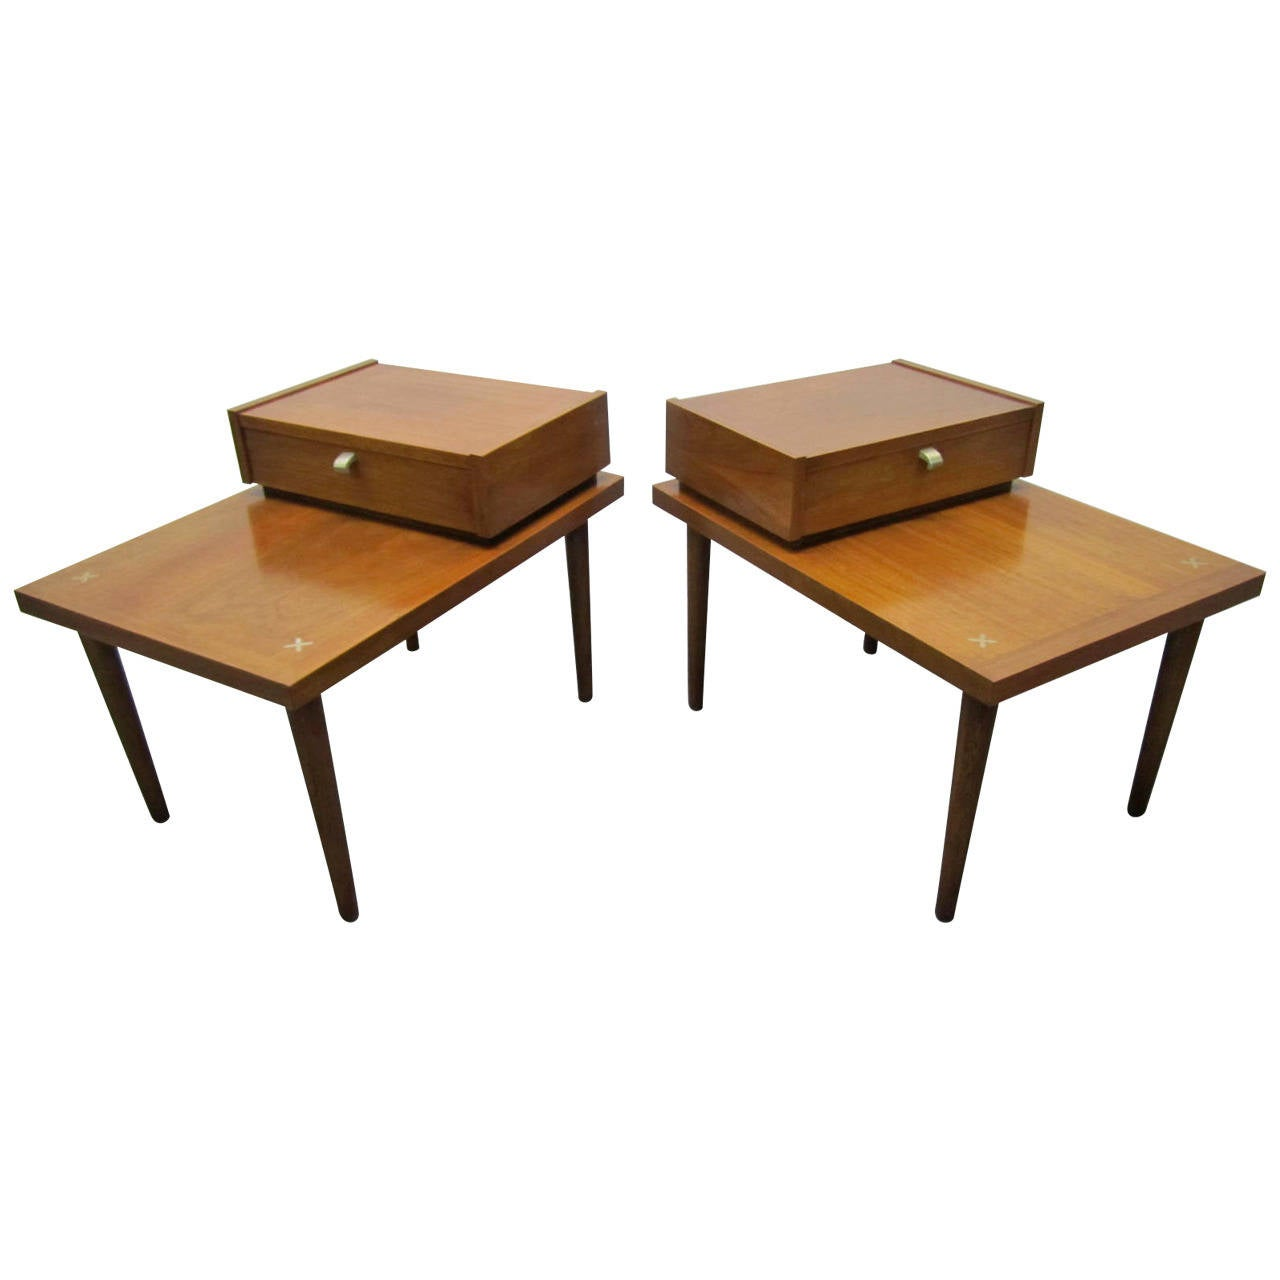 Handsome Pair Of American Of Martinsville Mid Century Modern End Tables For Sale At 1stdibs